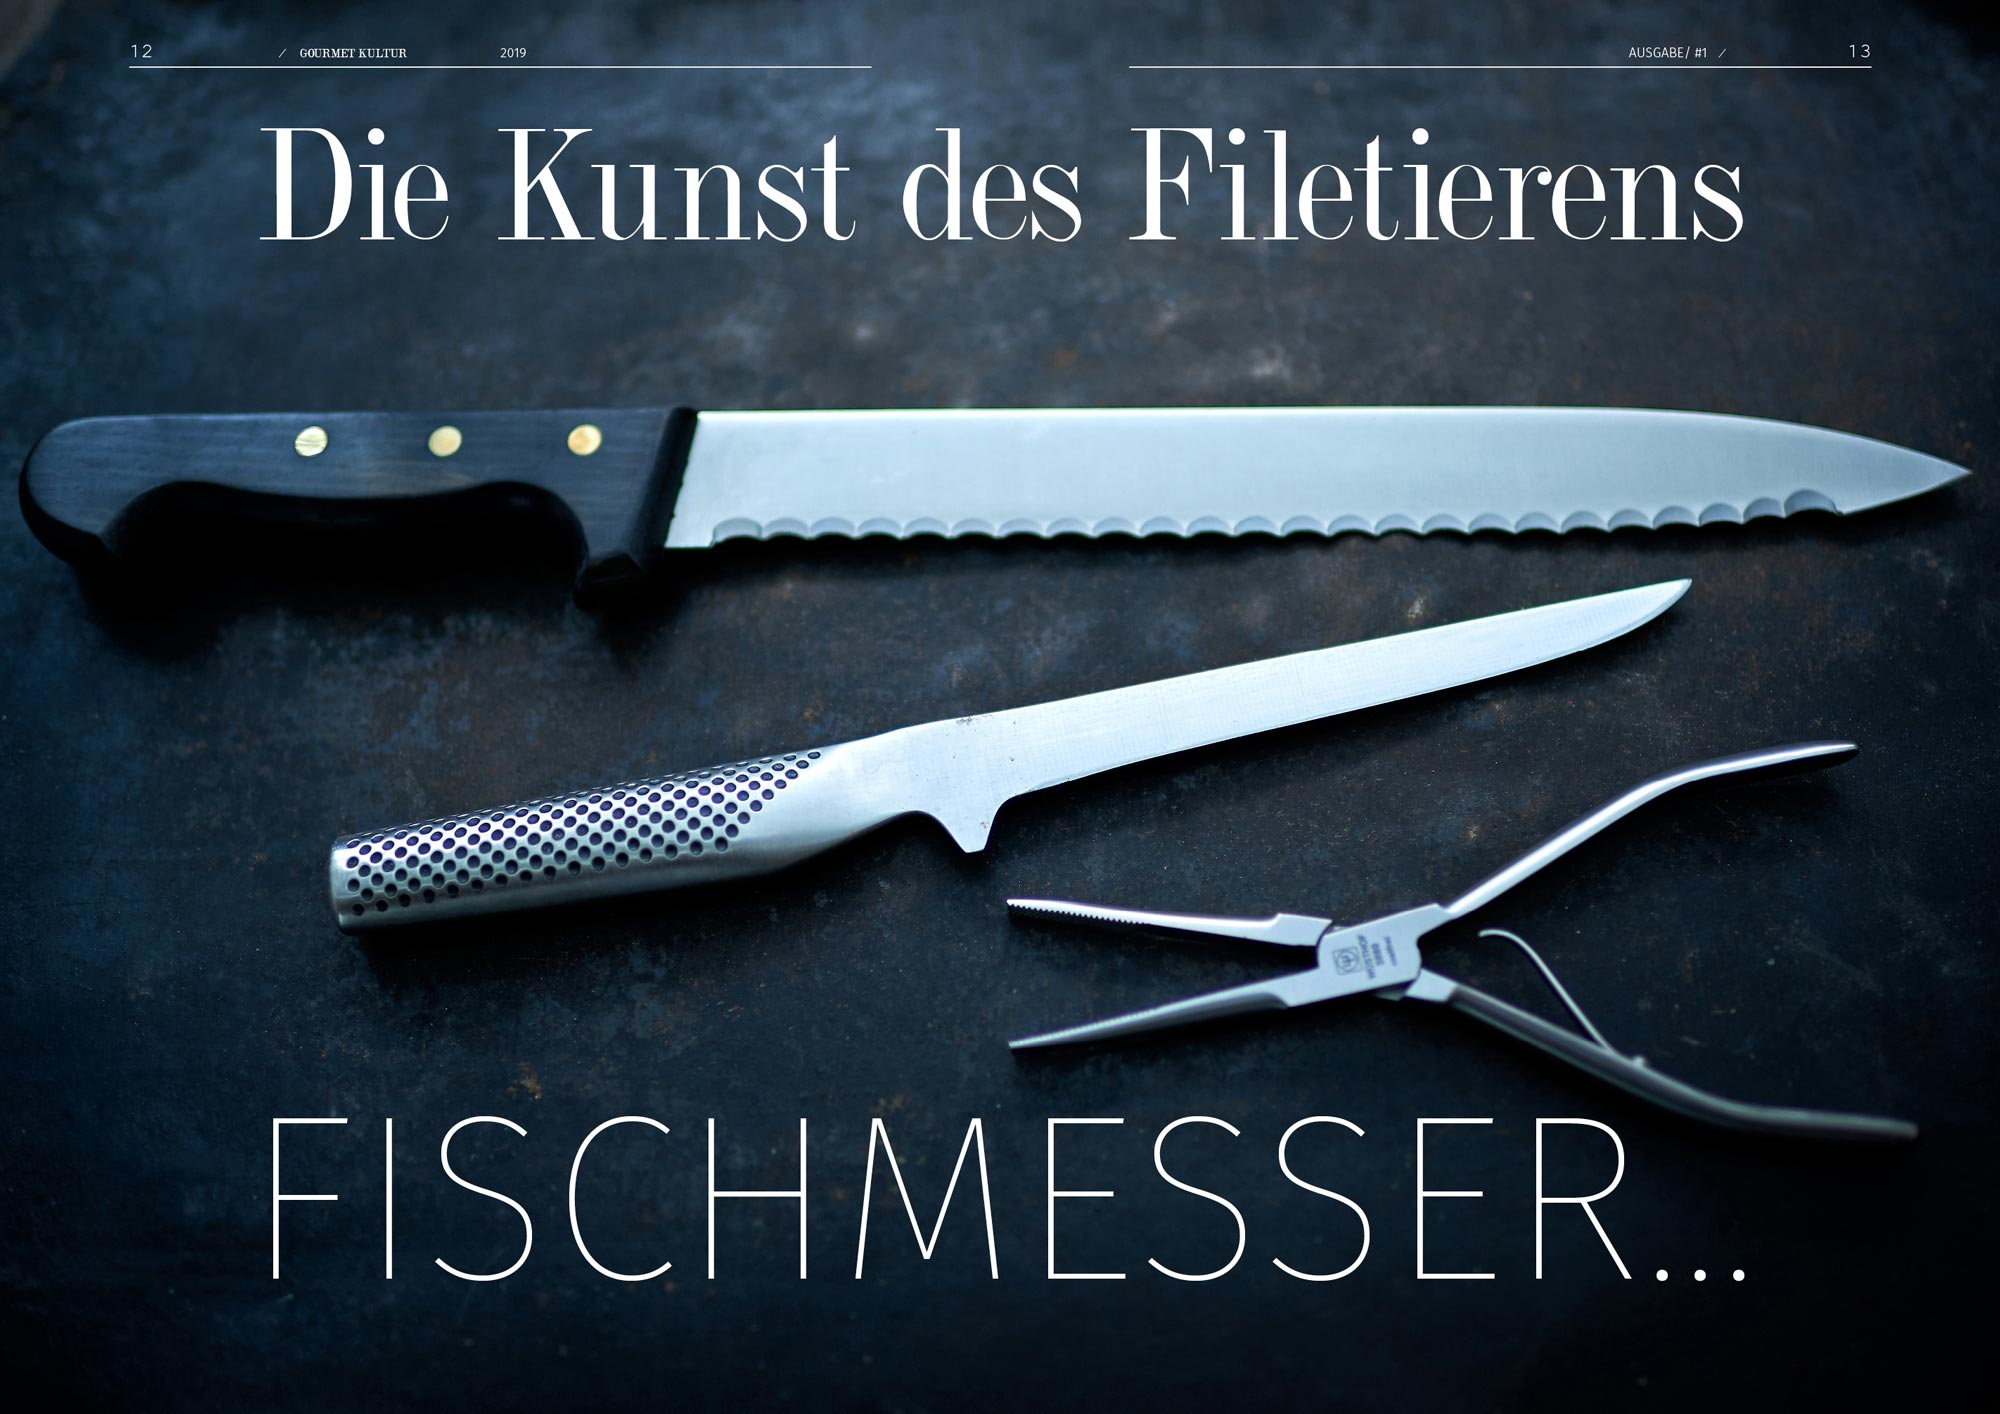 fine-food-blog-magazin-lachs-rauechern Die Kunst des Filetierens